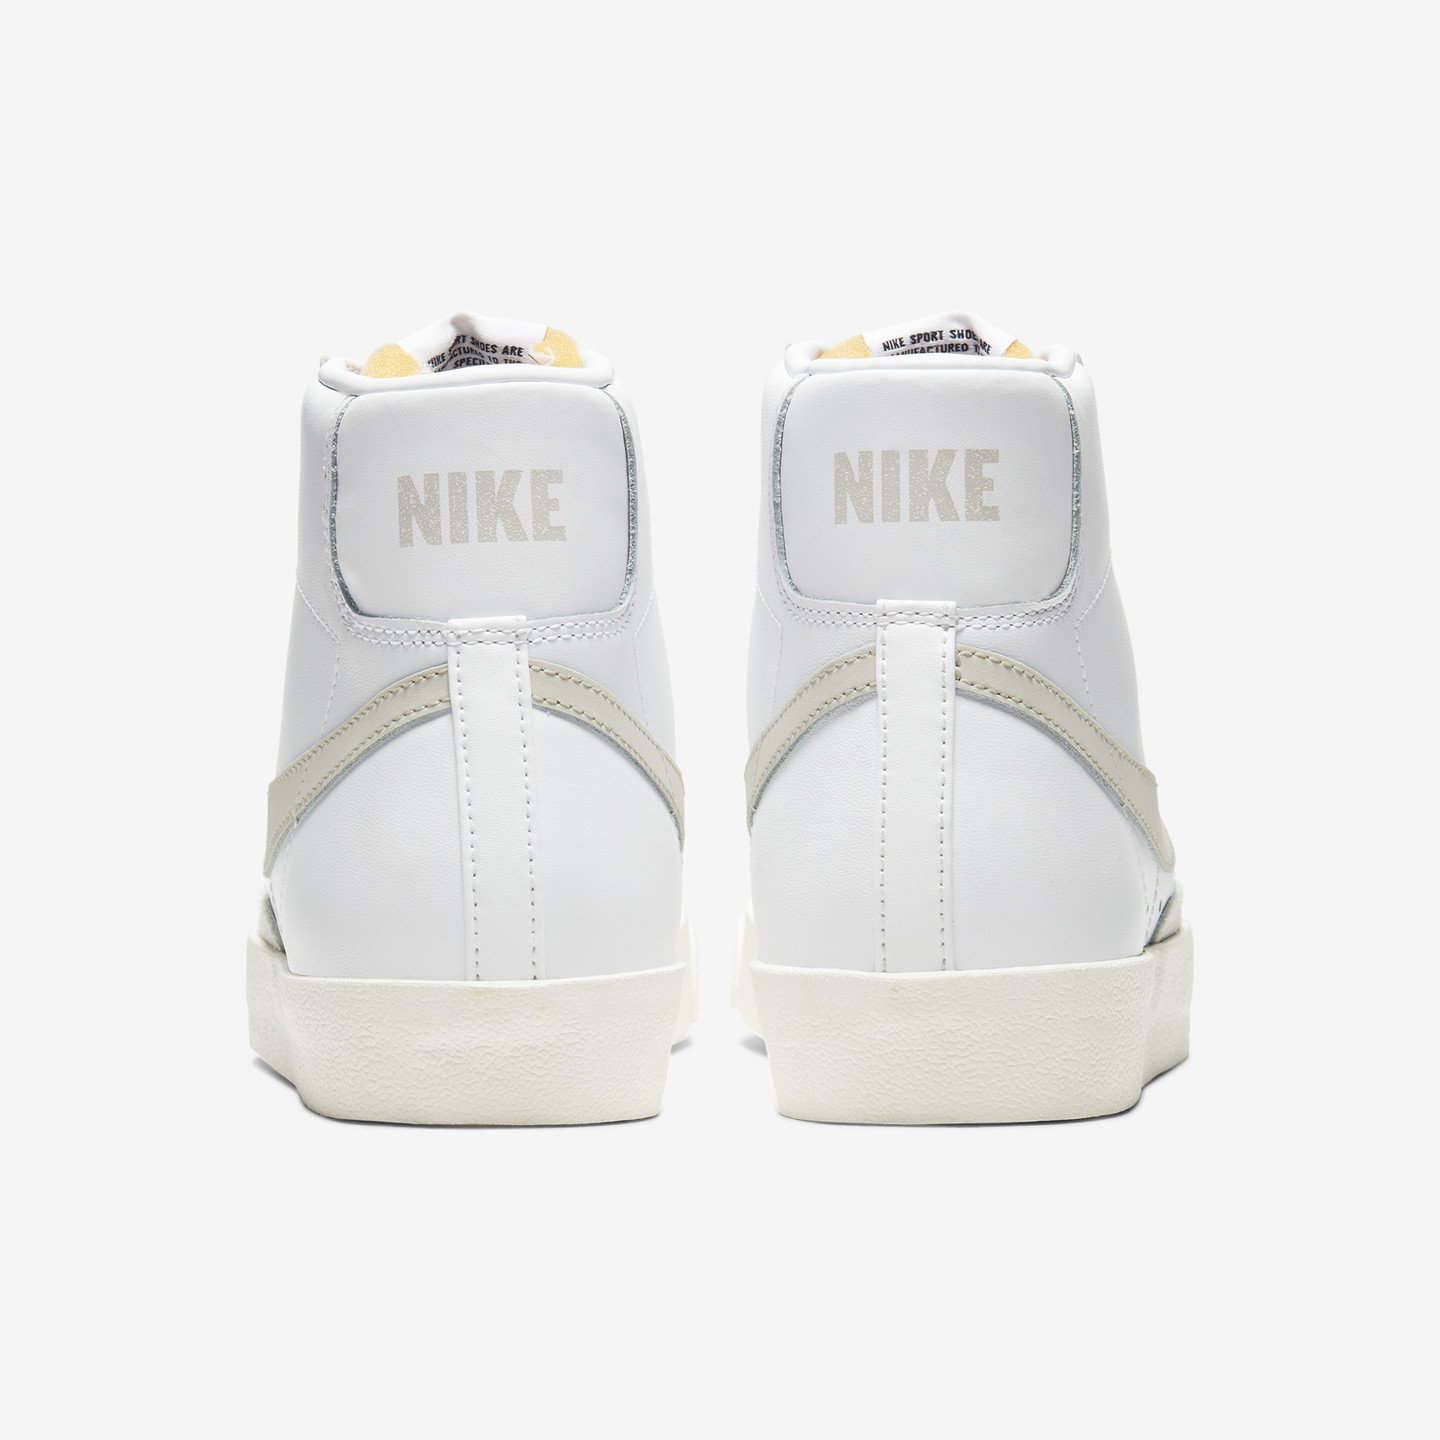 Nike Blazer Mid ´77 Vintage White / Light Bone / Sail BQ6806-106